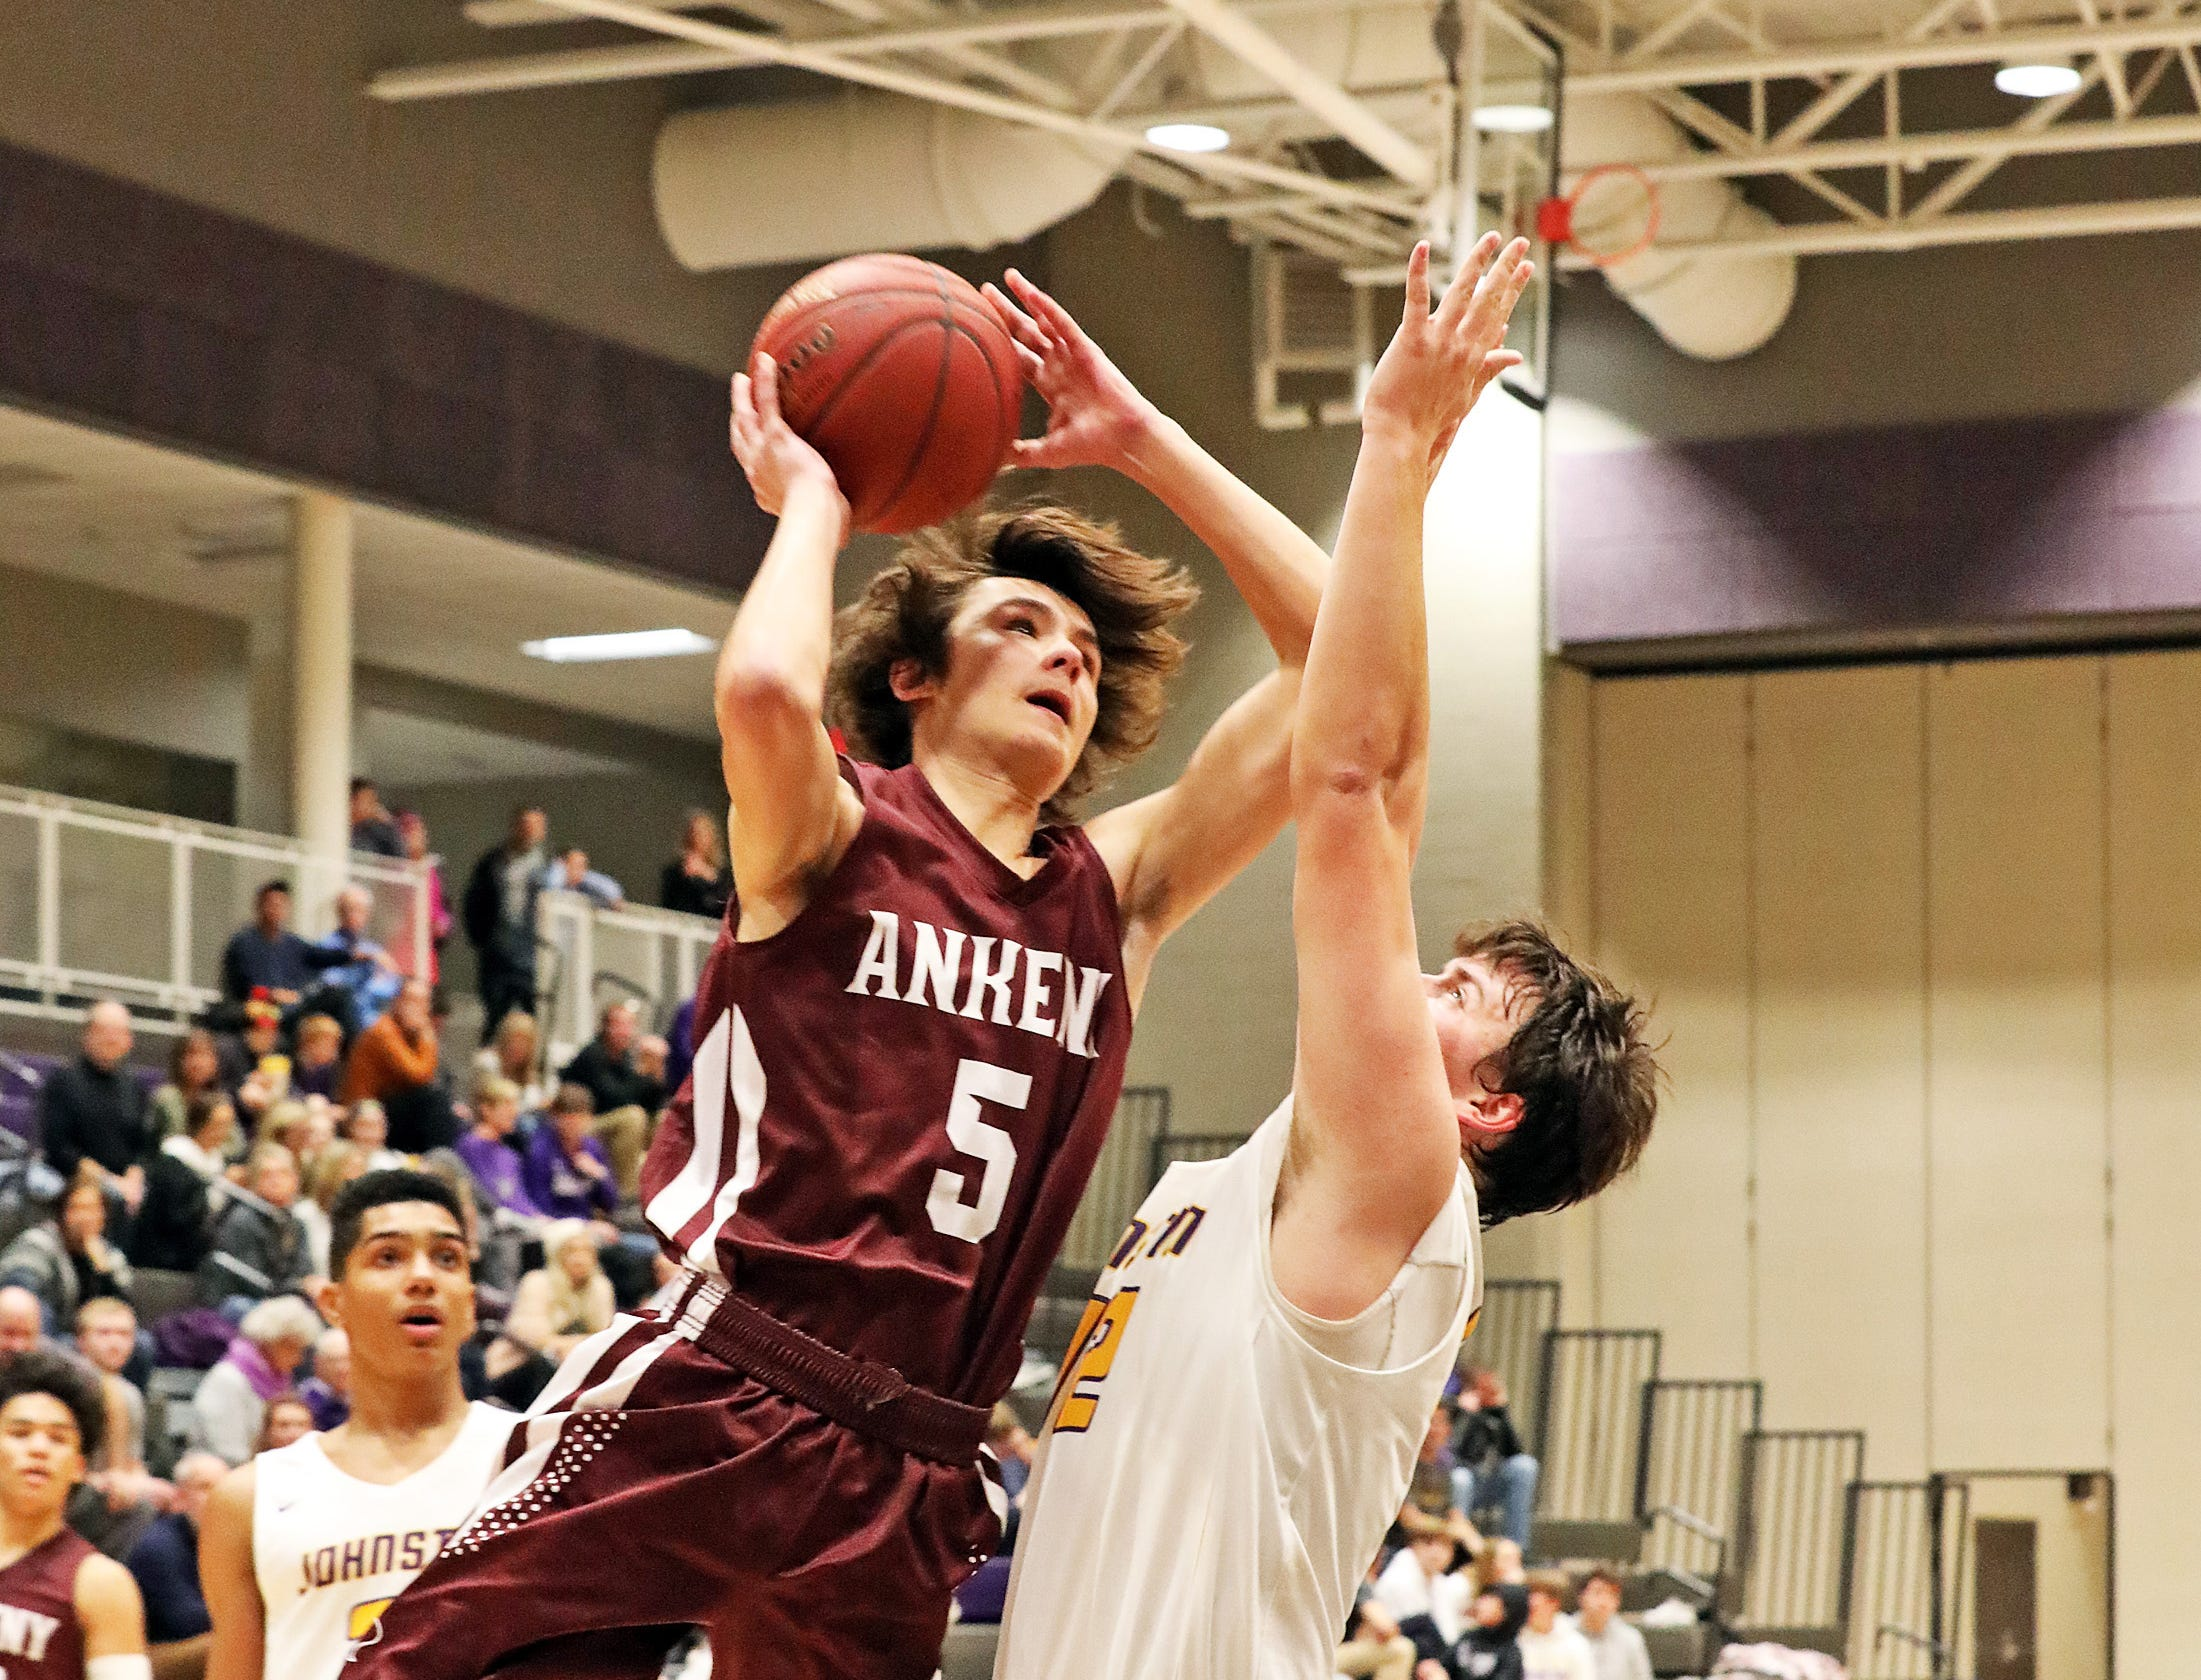 Ankeny senior Reece Pitz scores in the final period as the Ankeny Hawks compete against the Johnston Dragons in high school basketball on Friday, Dec. 21, 2018 at Johnston High School.